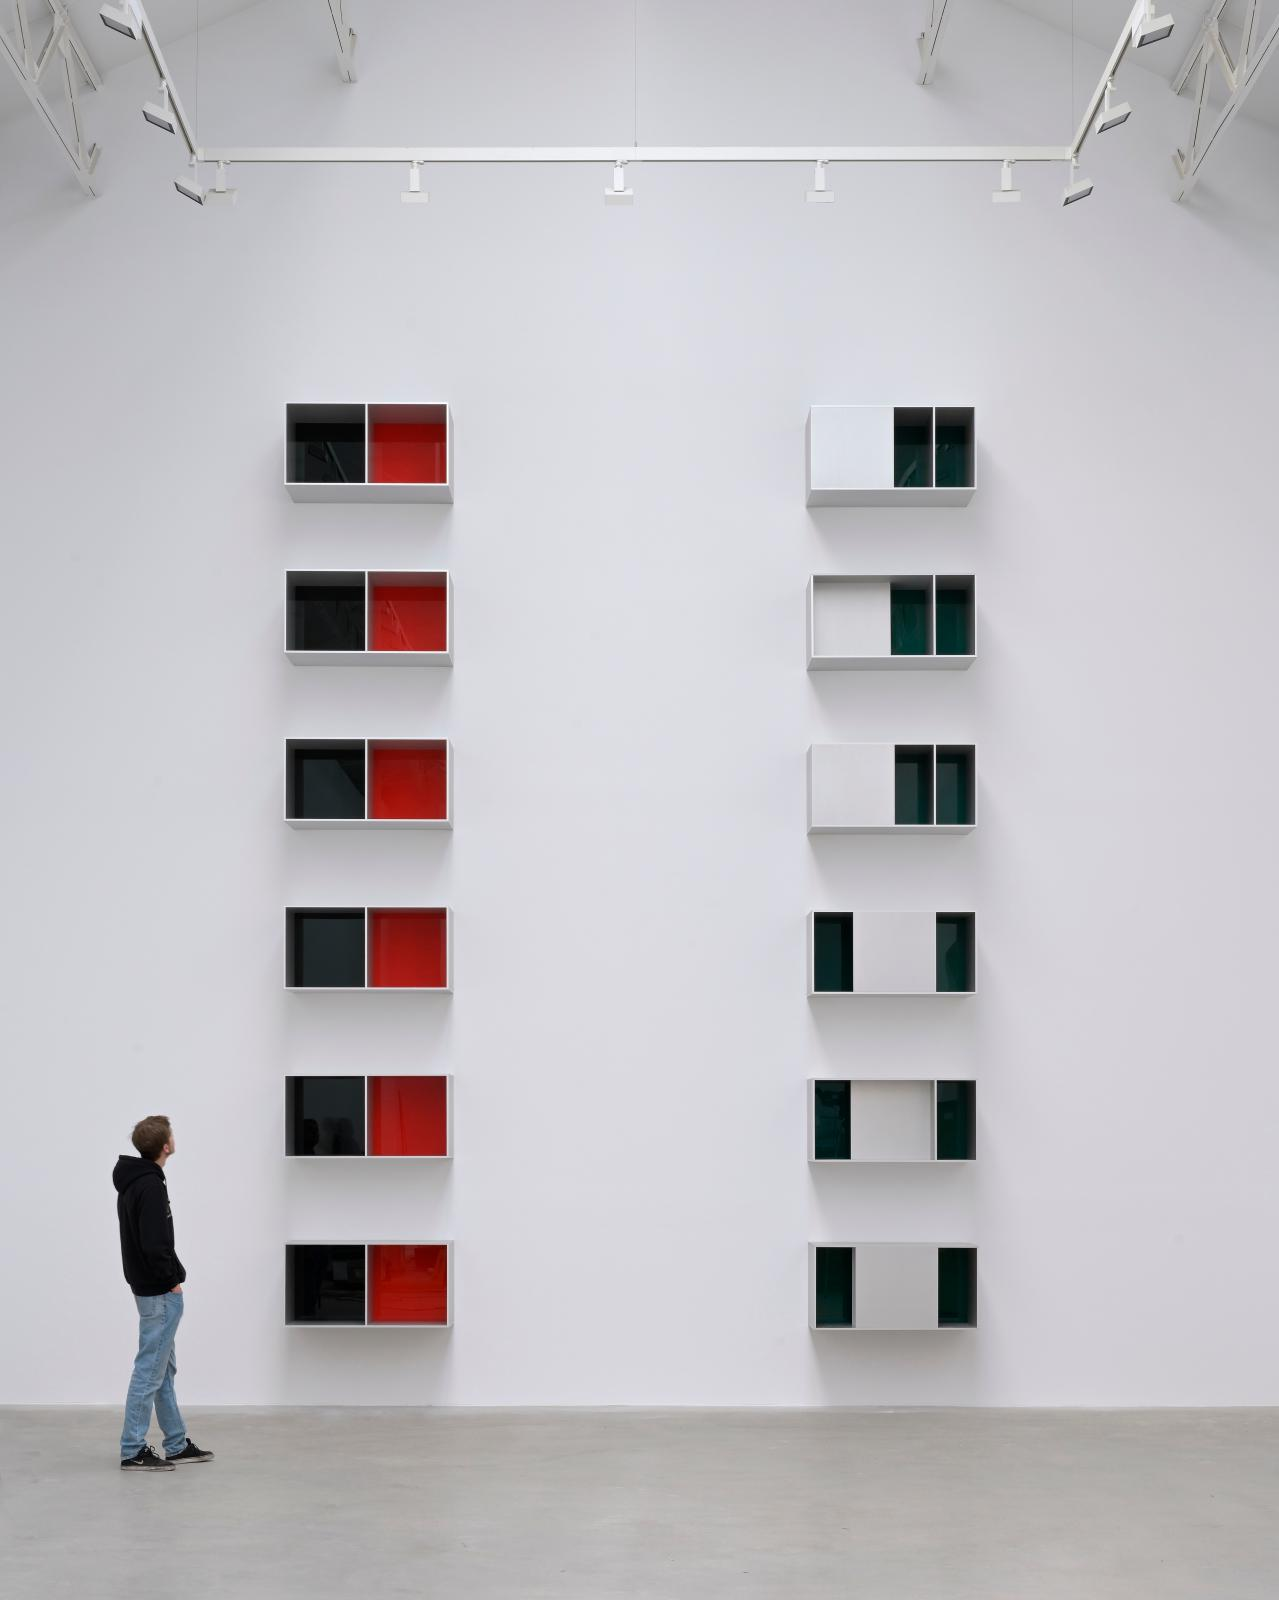 Donald Judd (1928-1994), Untitled, 1988 and Untitled, 1988, anodized aluminium and Plexiglas.